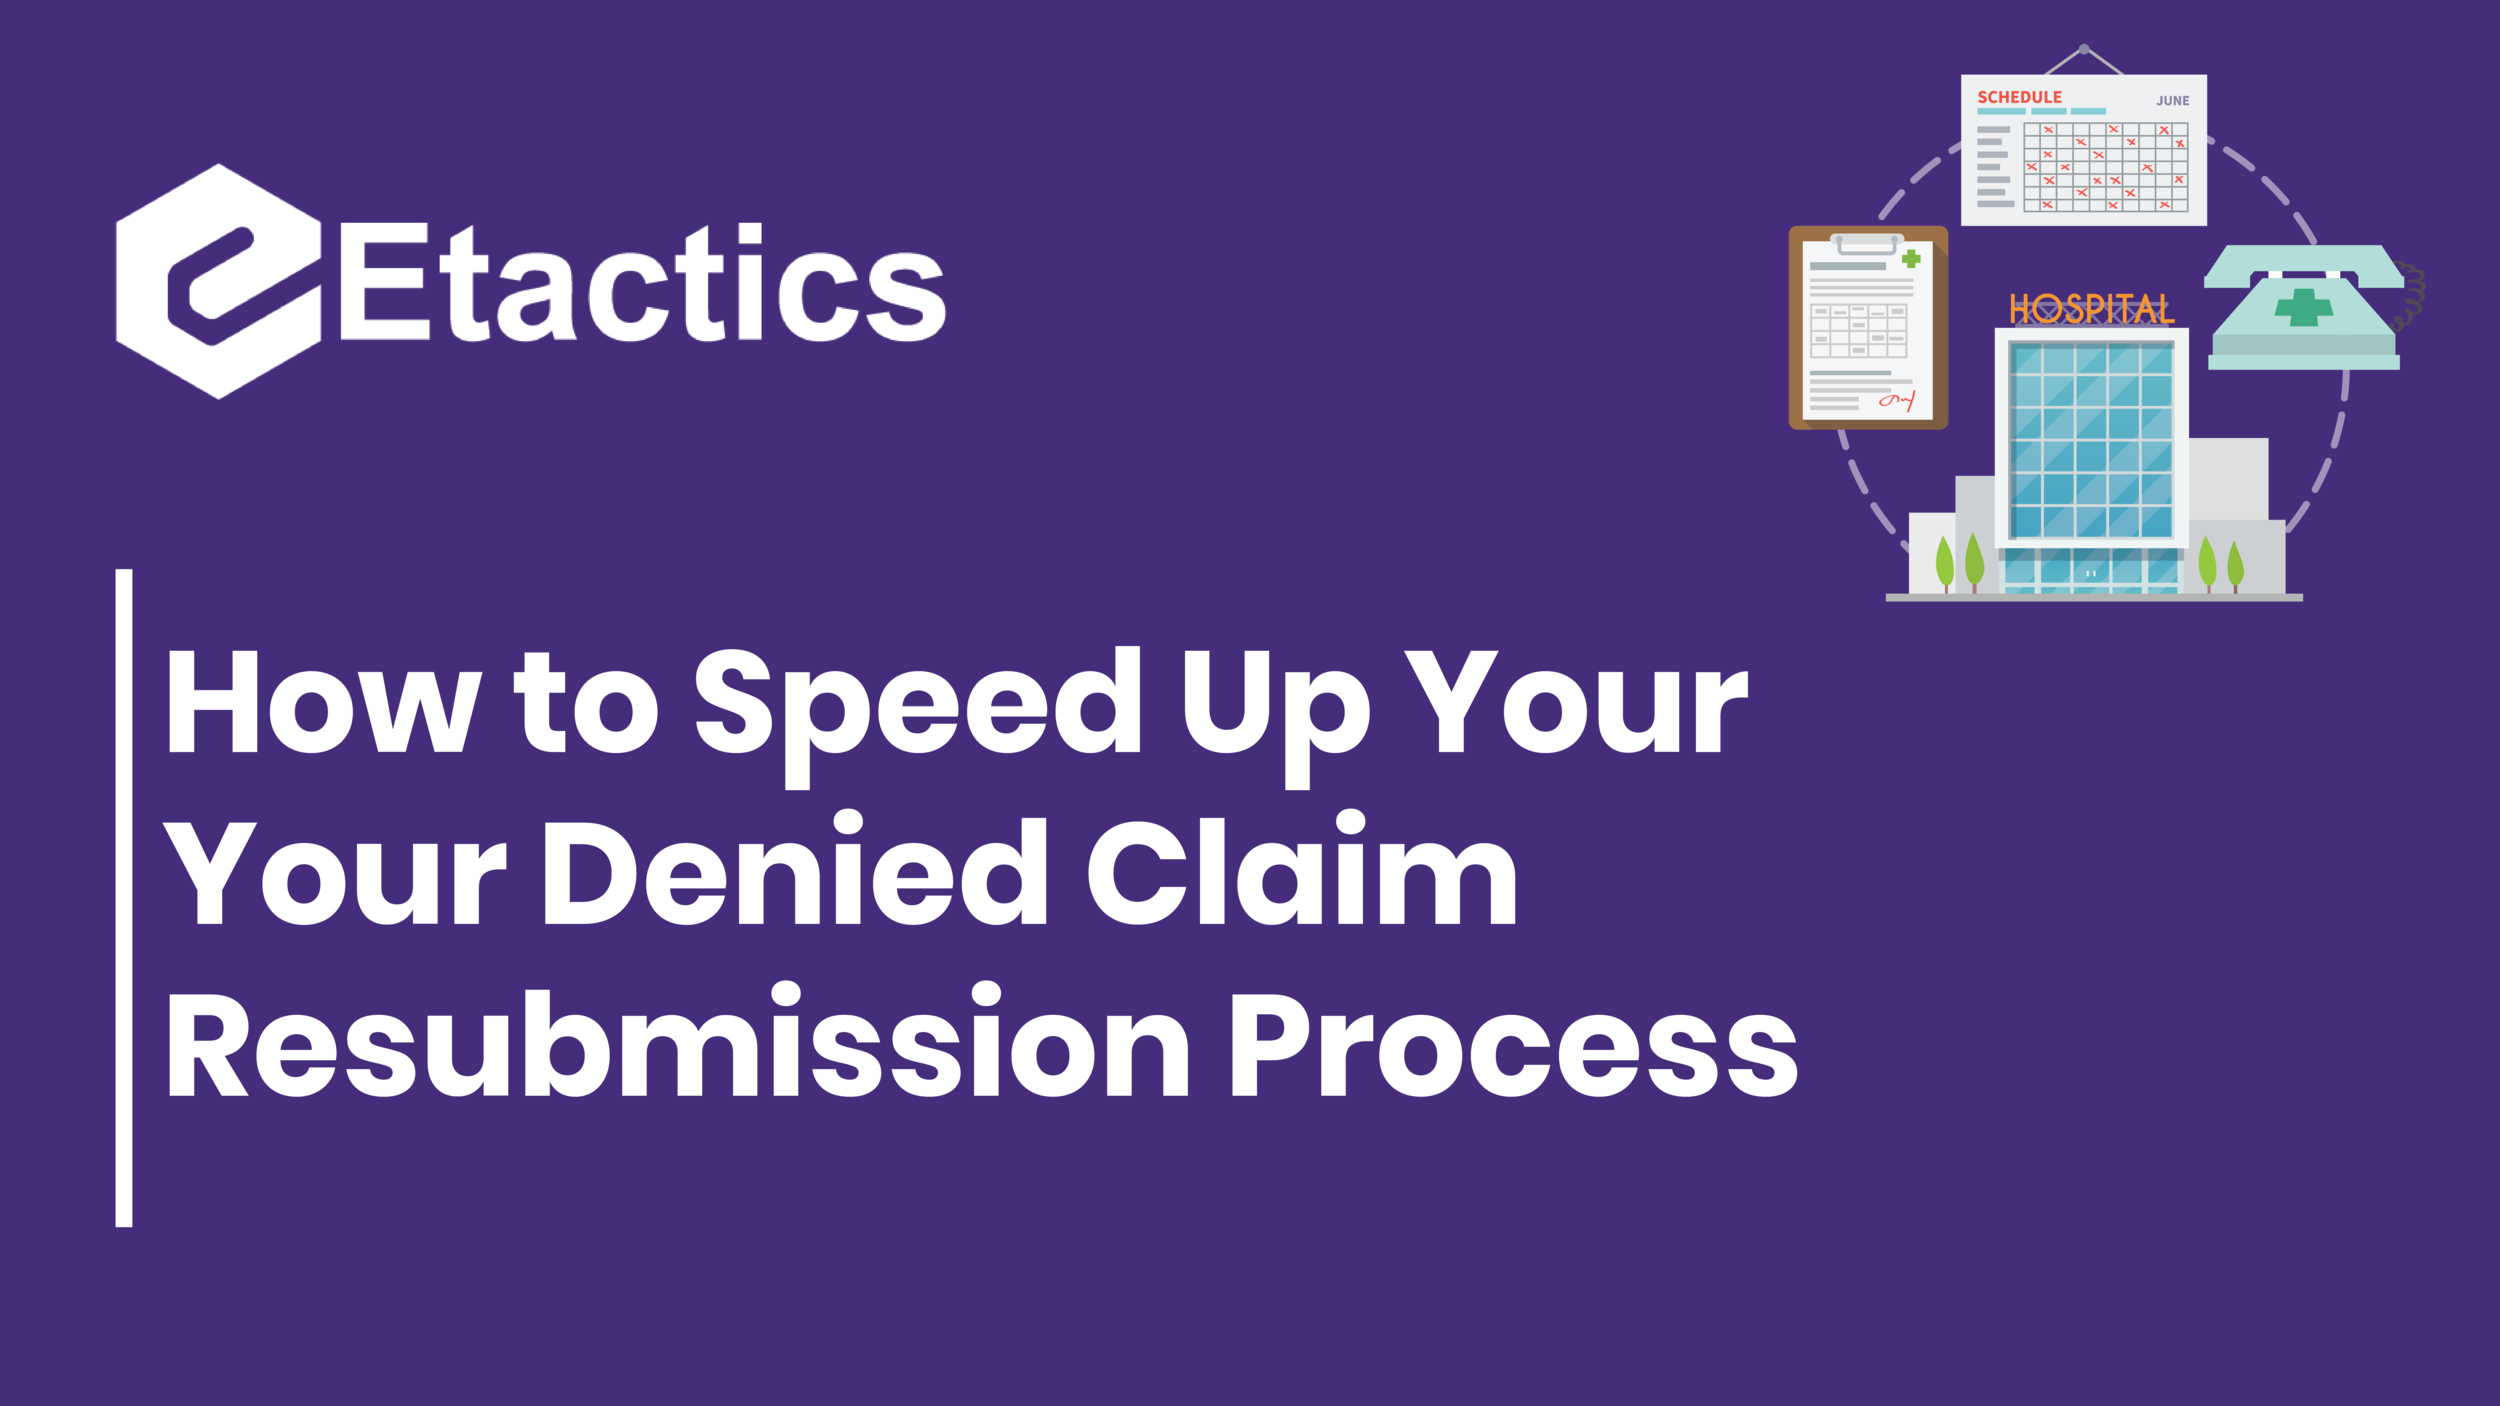 DeniedClaimResubmissionProcess_072019.png